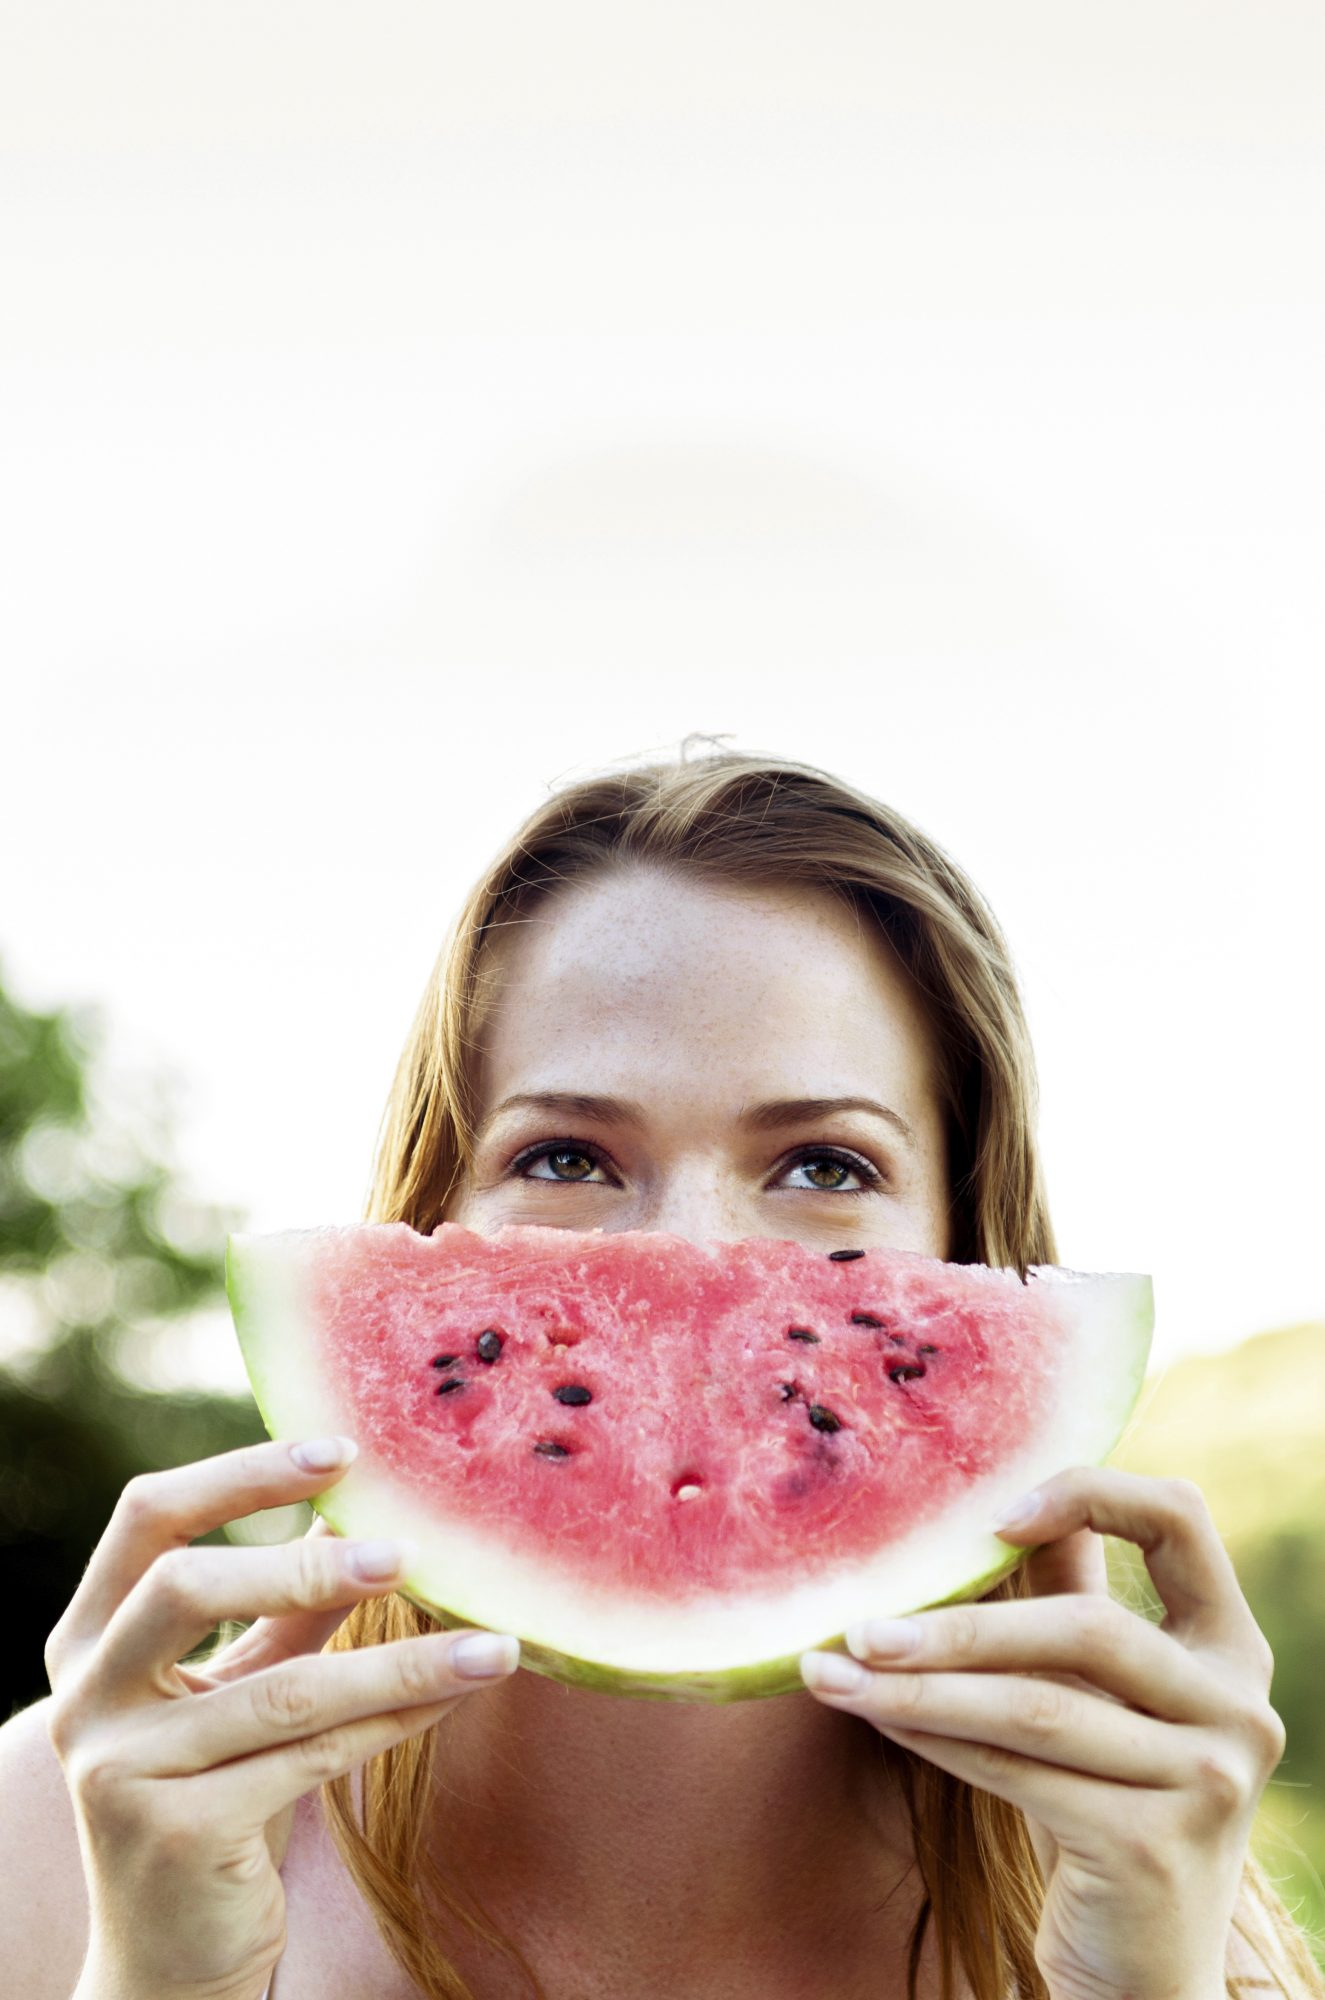 summer-eating-watermelon